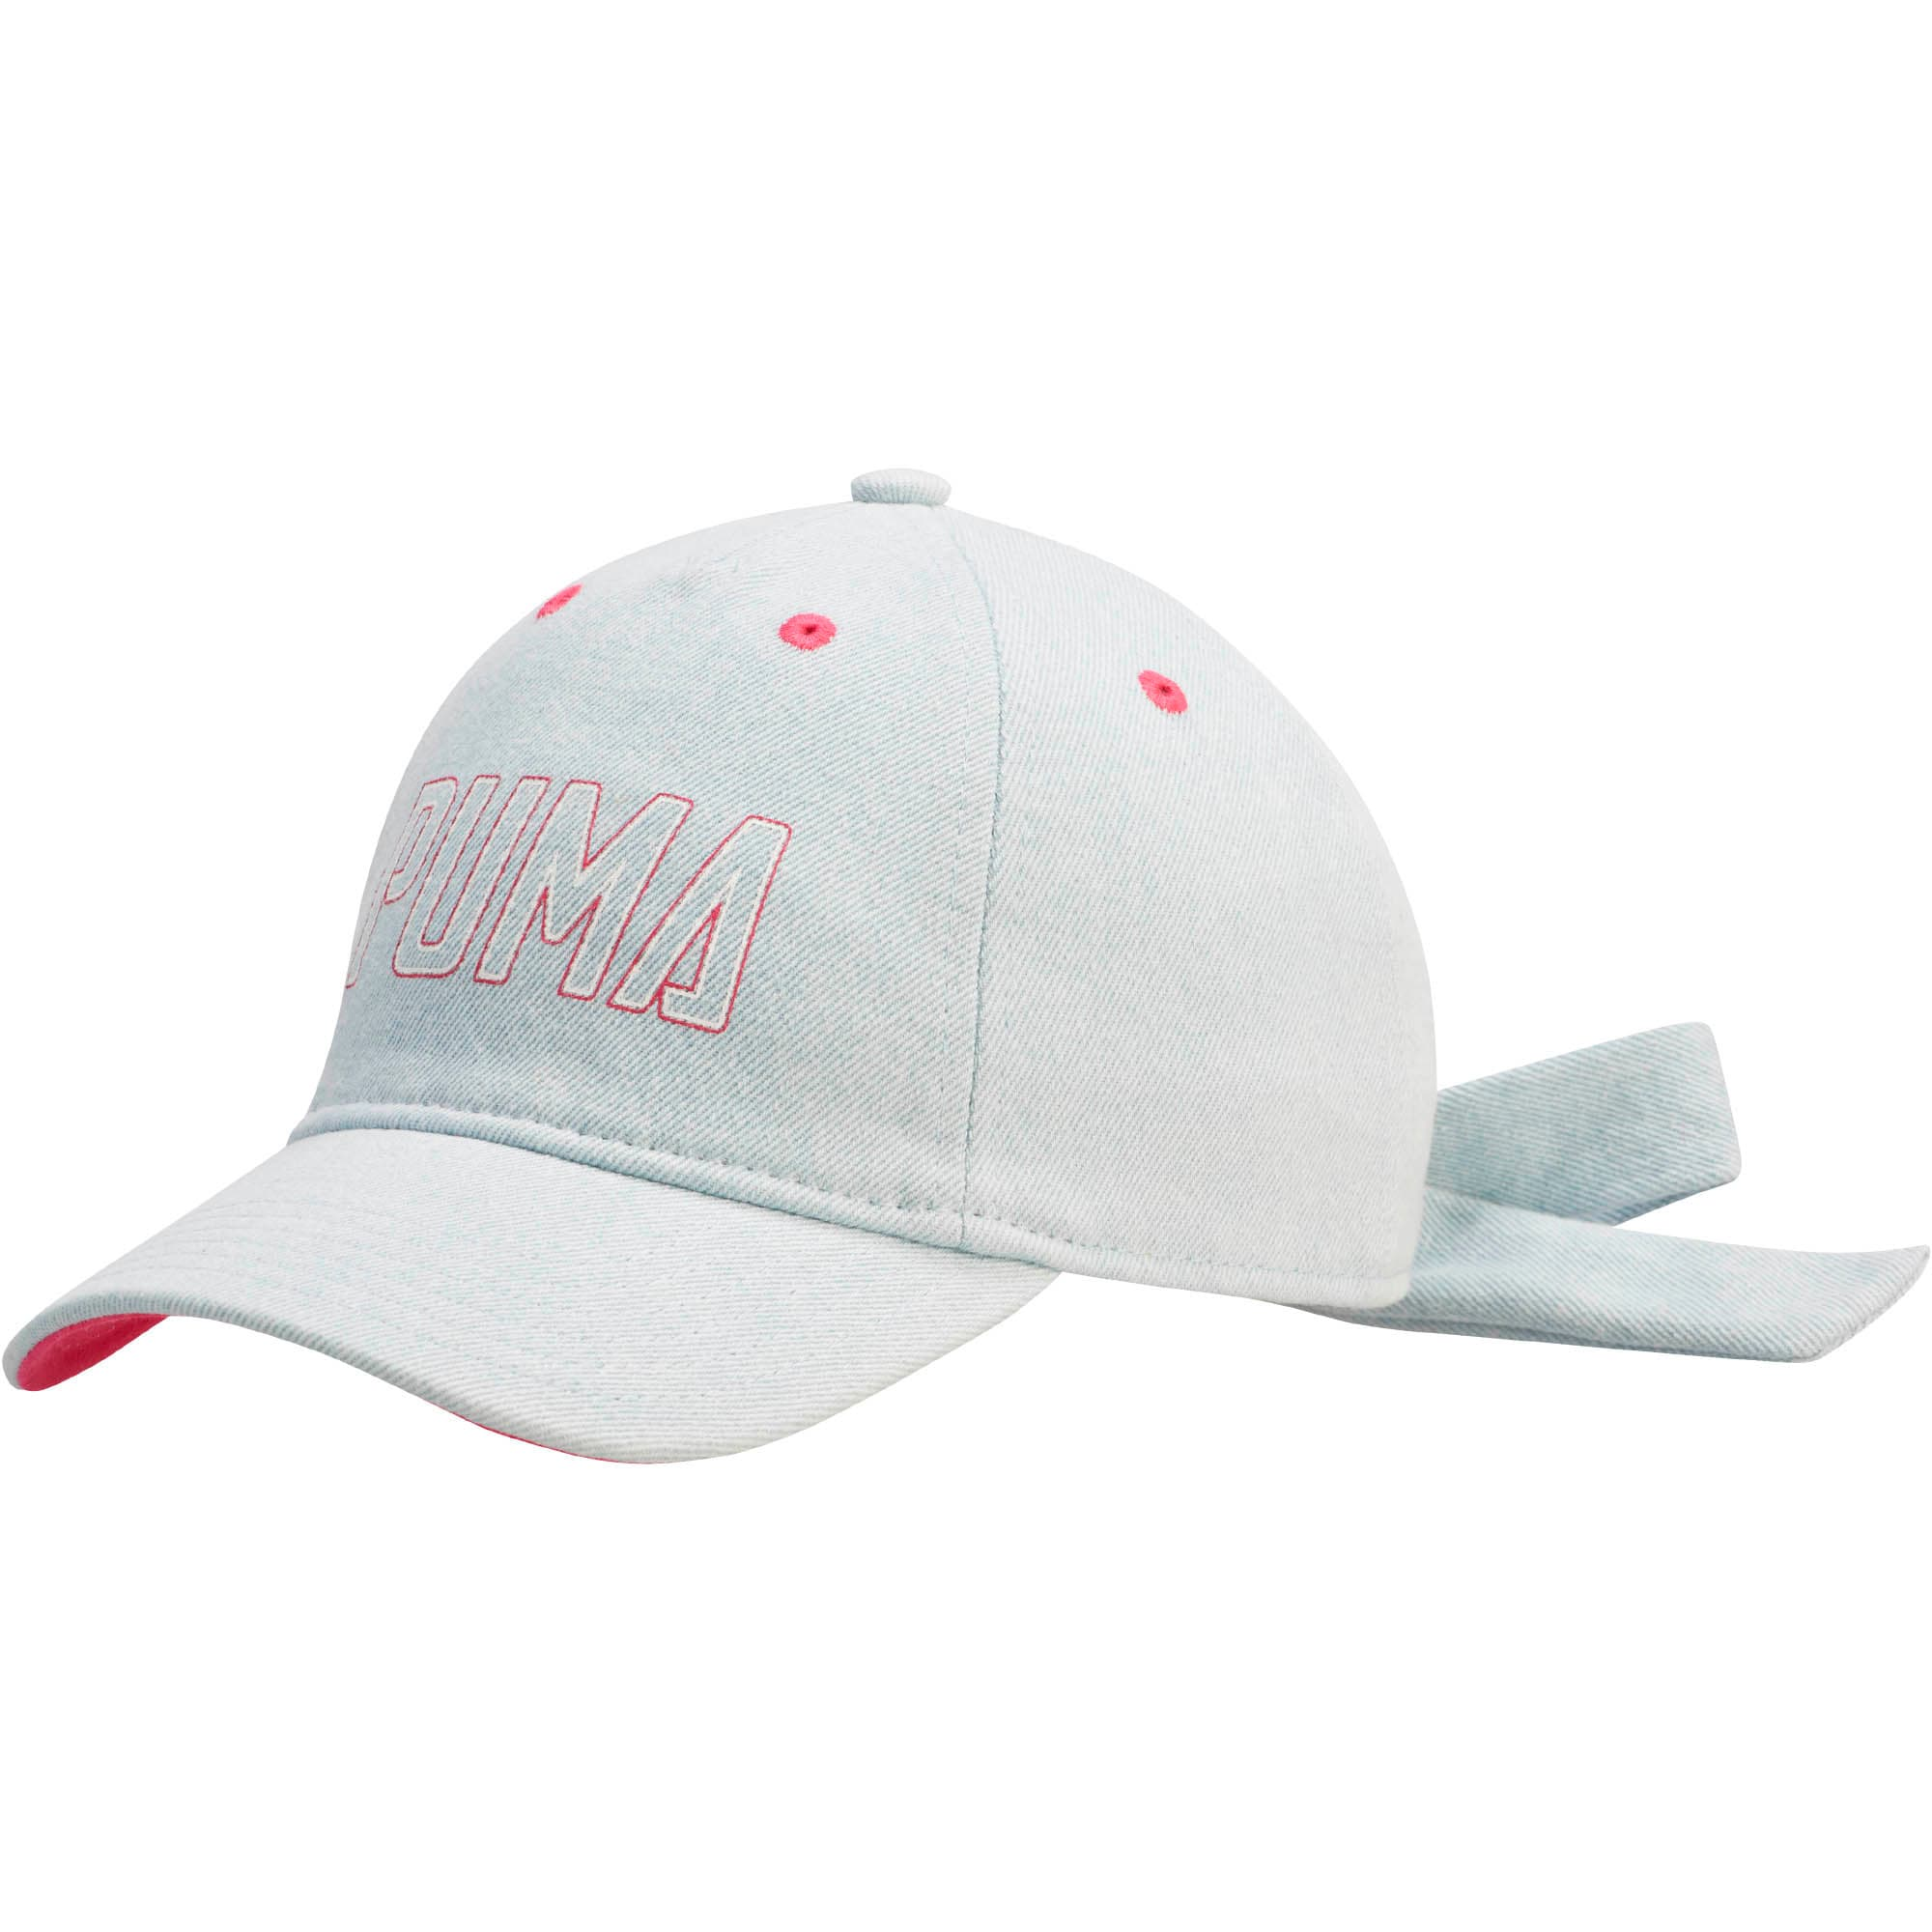 Thumbnail 1 of The Halftime Adjustable Cap, BLUE / PINK, medium